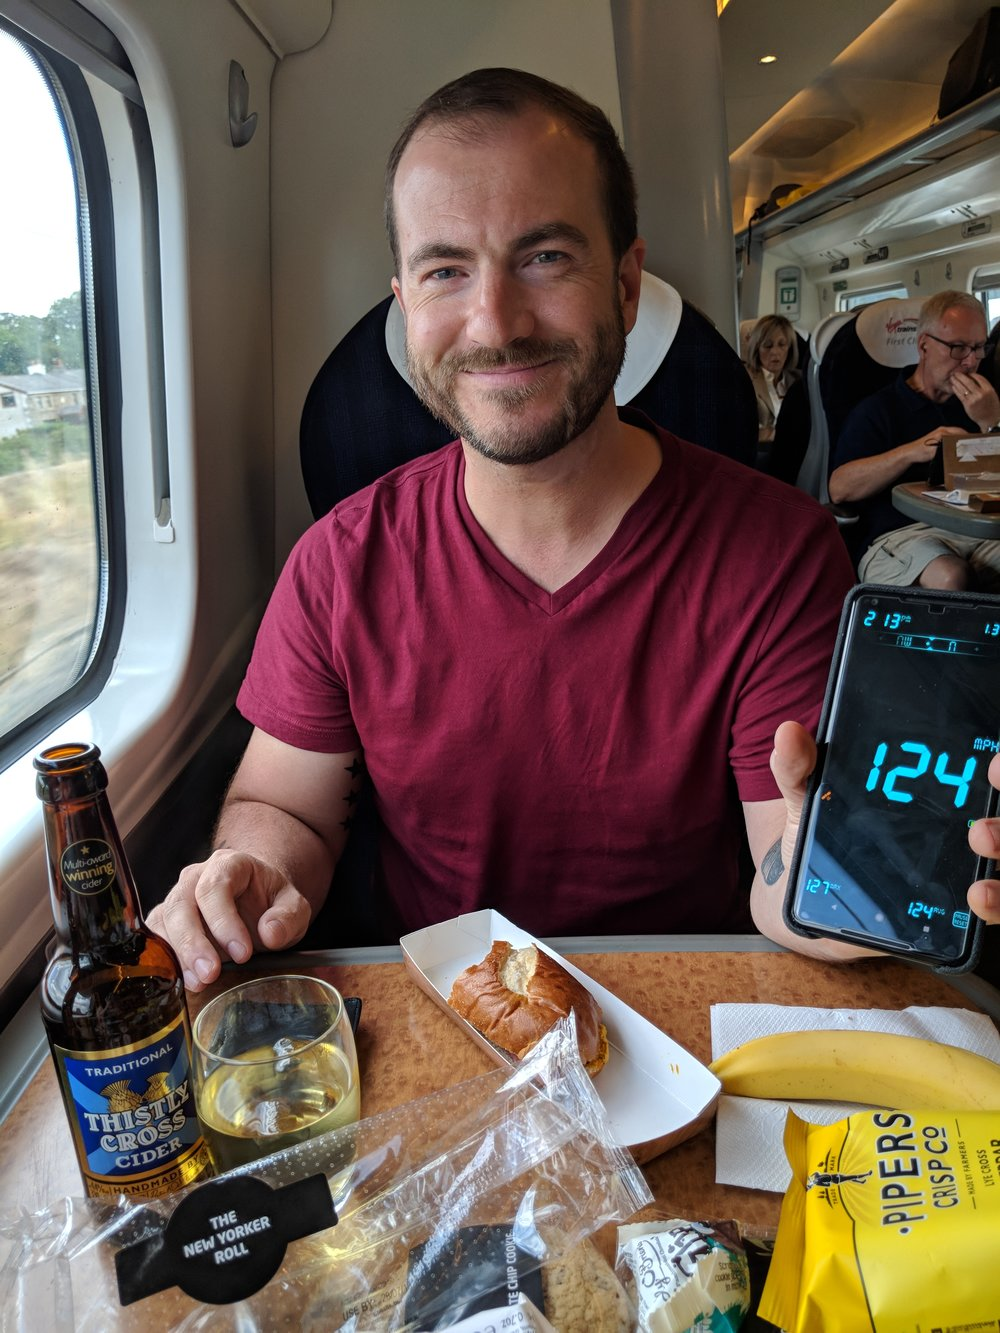 Virgin Trains First Class to Edinburgh, Scotland